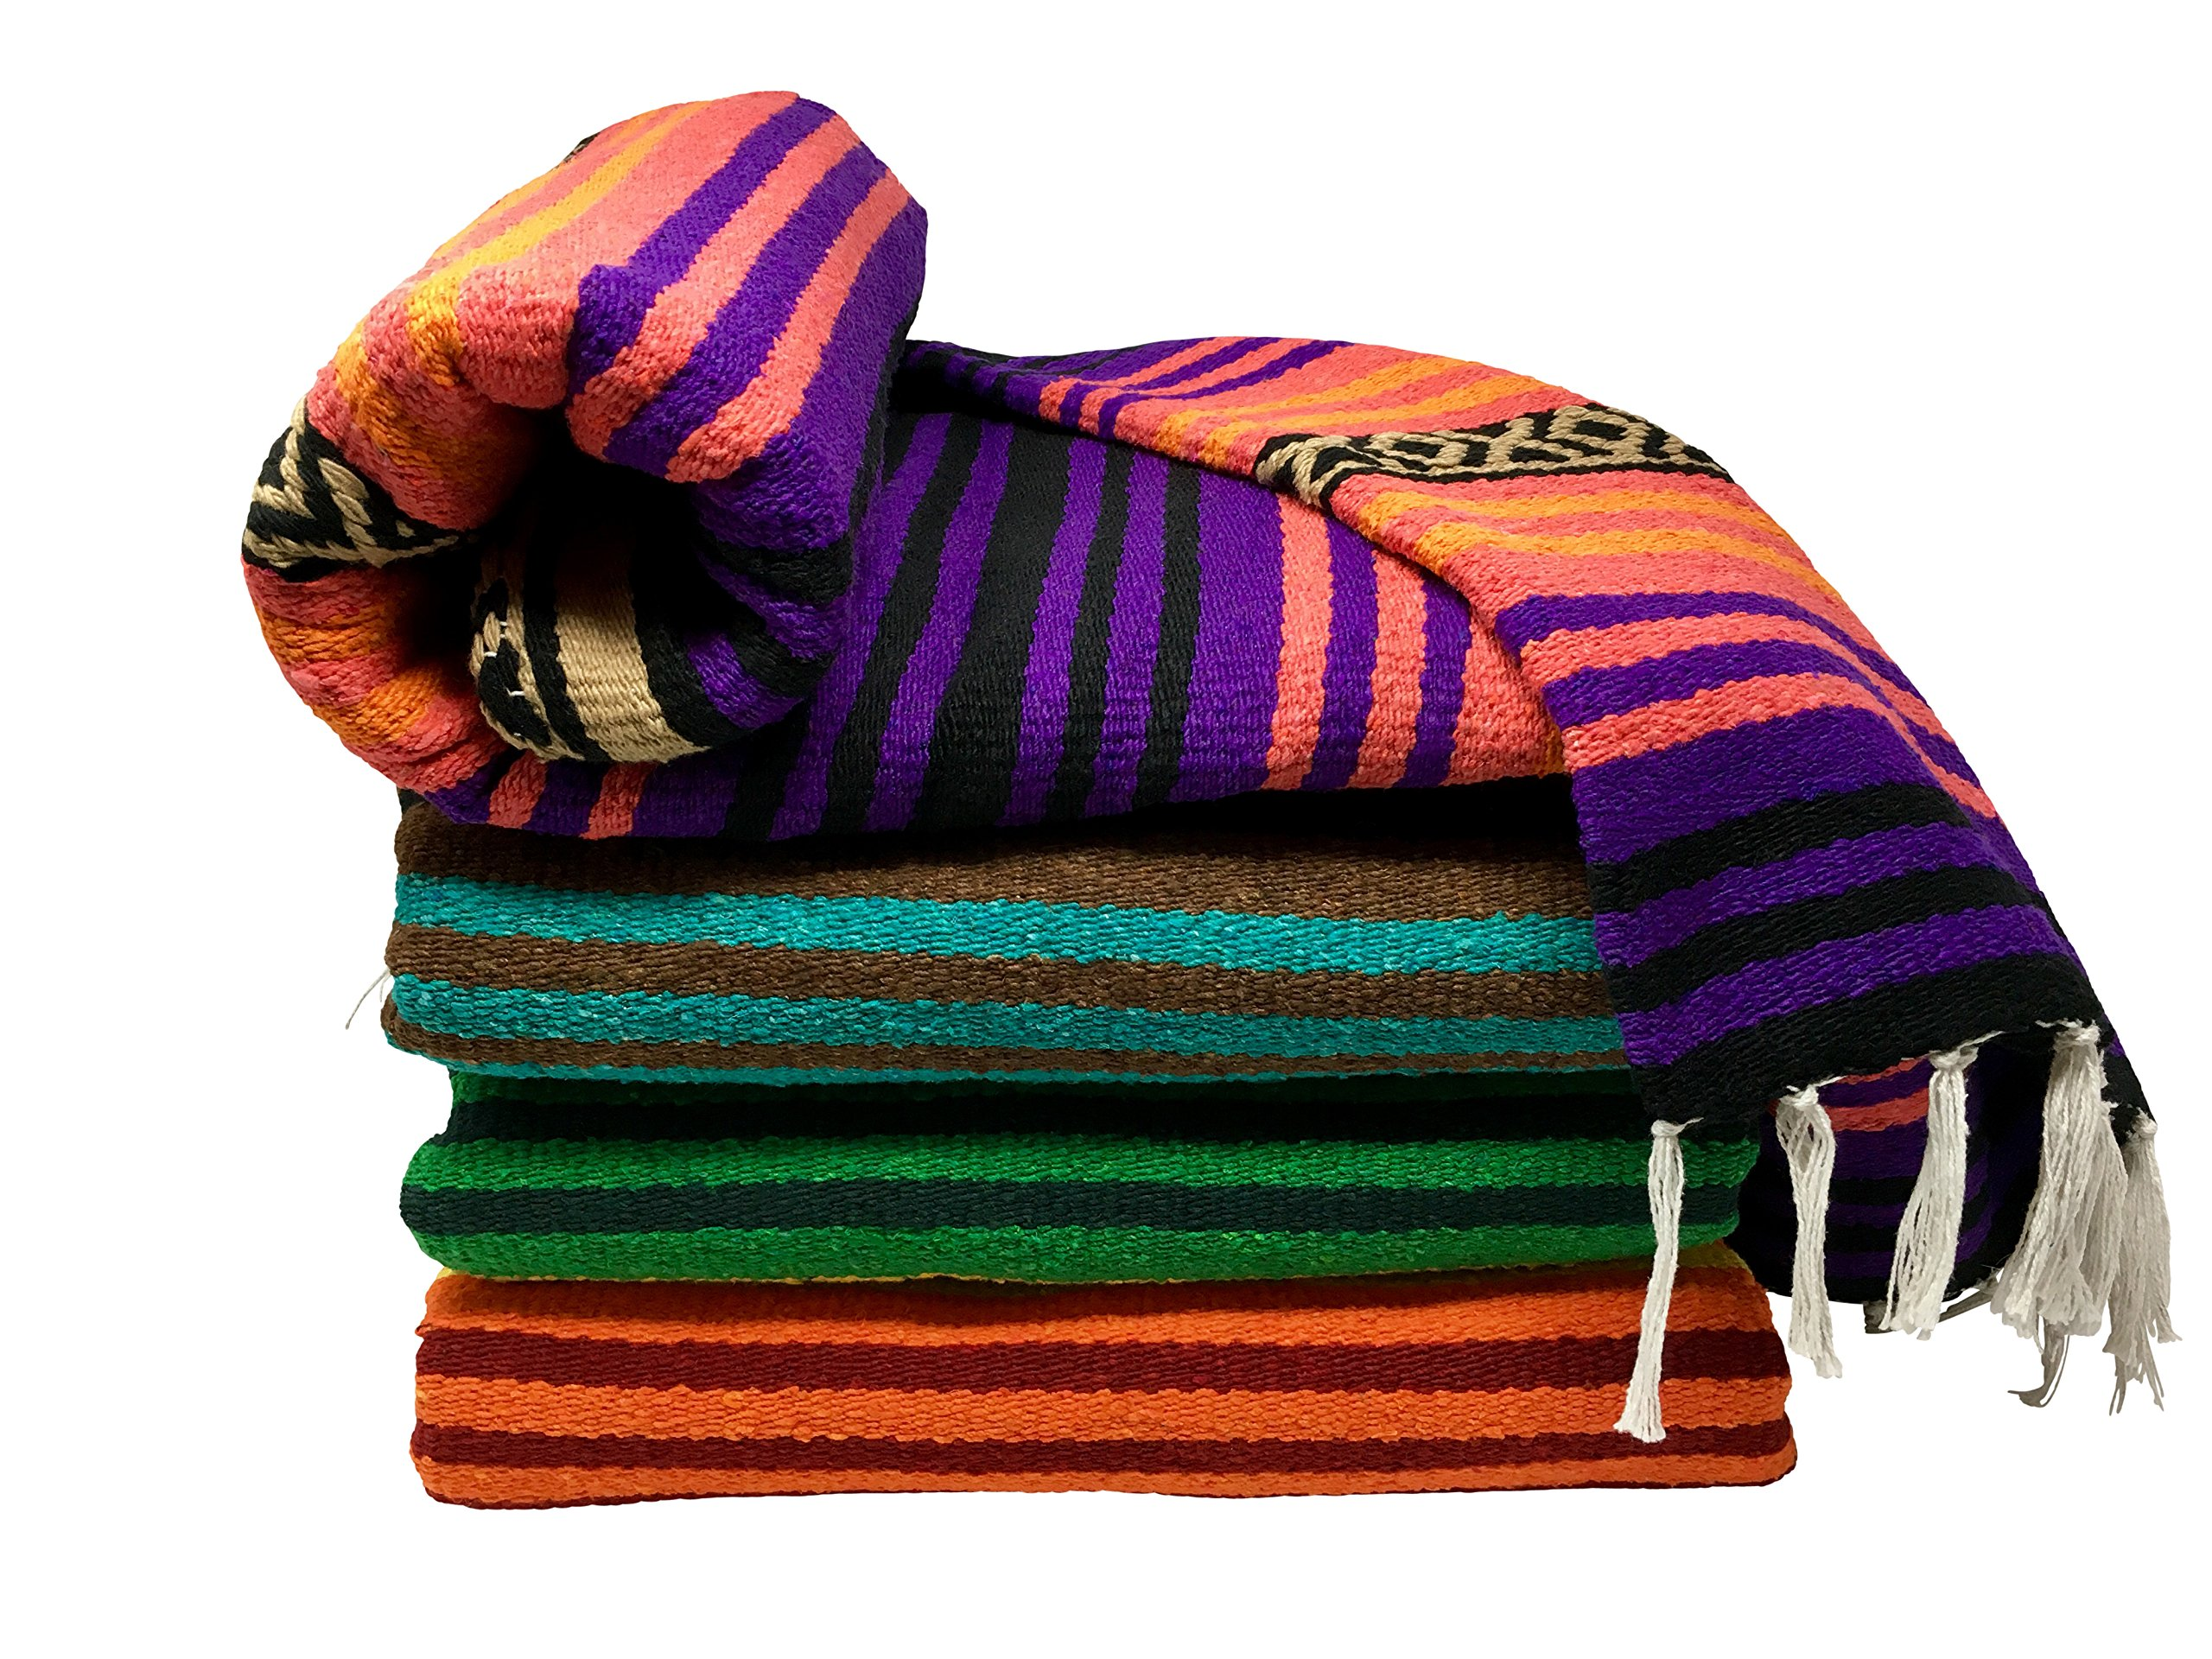 Spirit Quest Supplies Bodhi Blanket Mexican Style Throw Blanket - Falsa Blanket for Yoga, Picnics, Beach, Tapestry, Camping, More (Desert Dreams: Purple, Pink, Orange, Black, Tan)